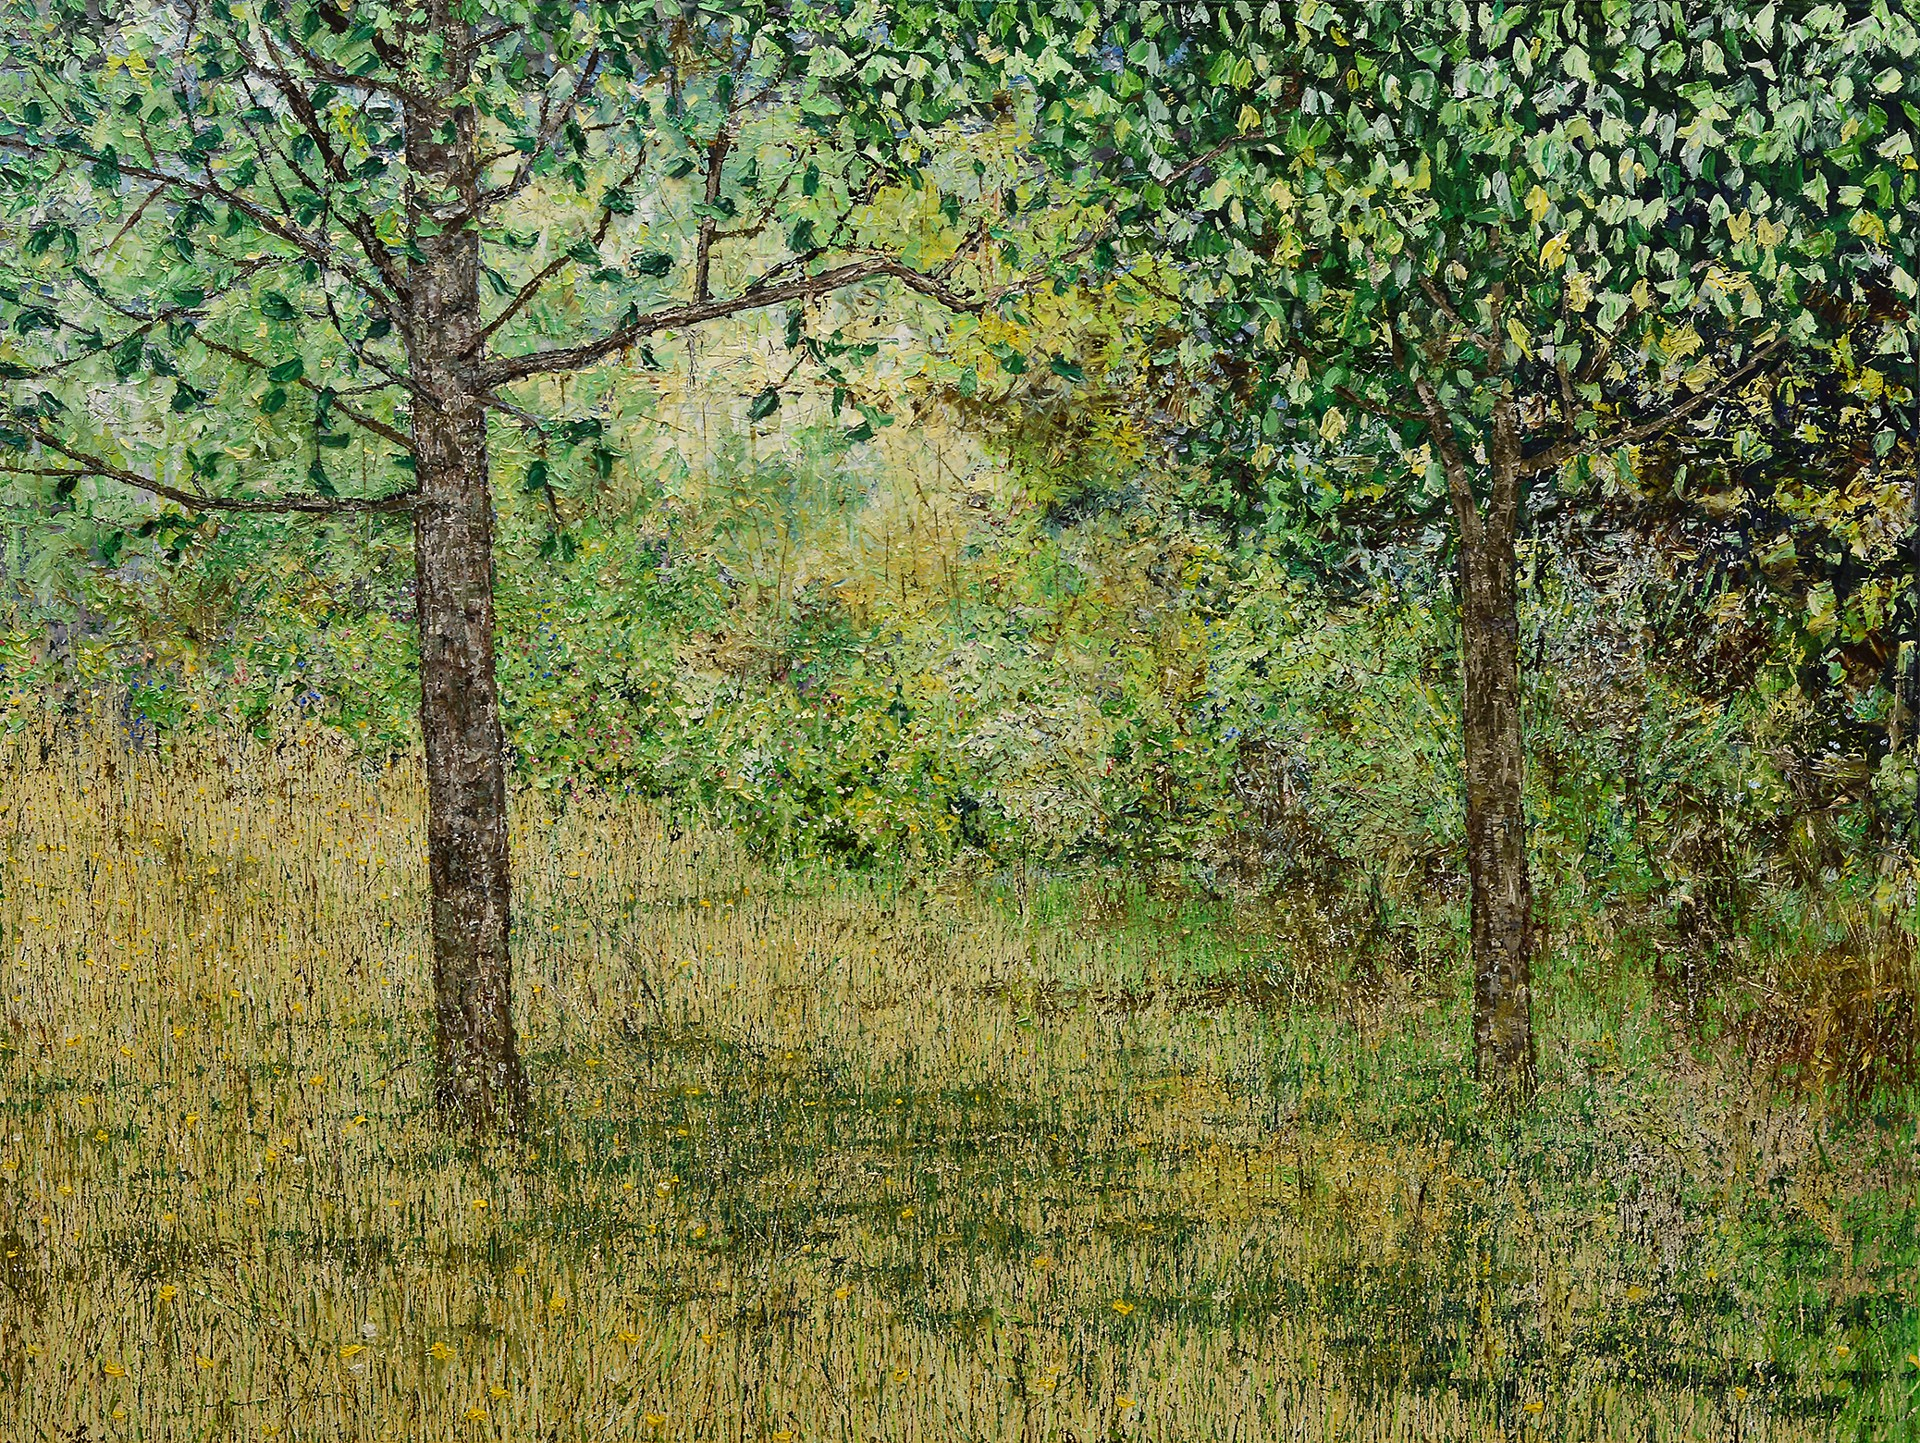 Two Trees by a Garden by Chris Charlebois